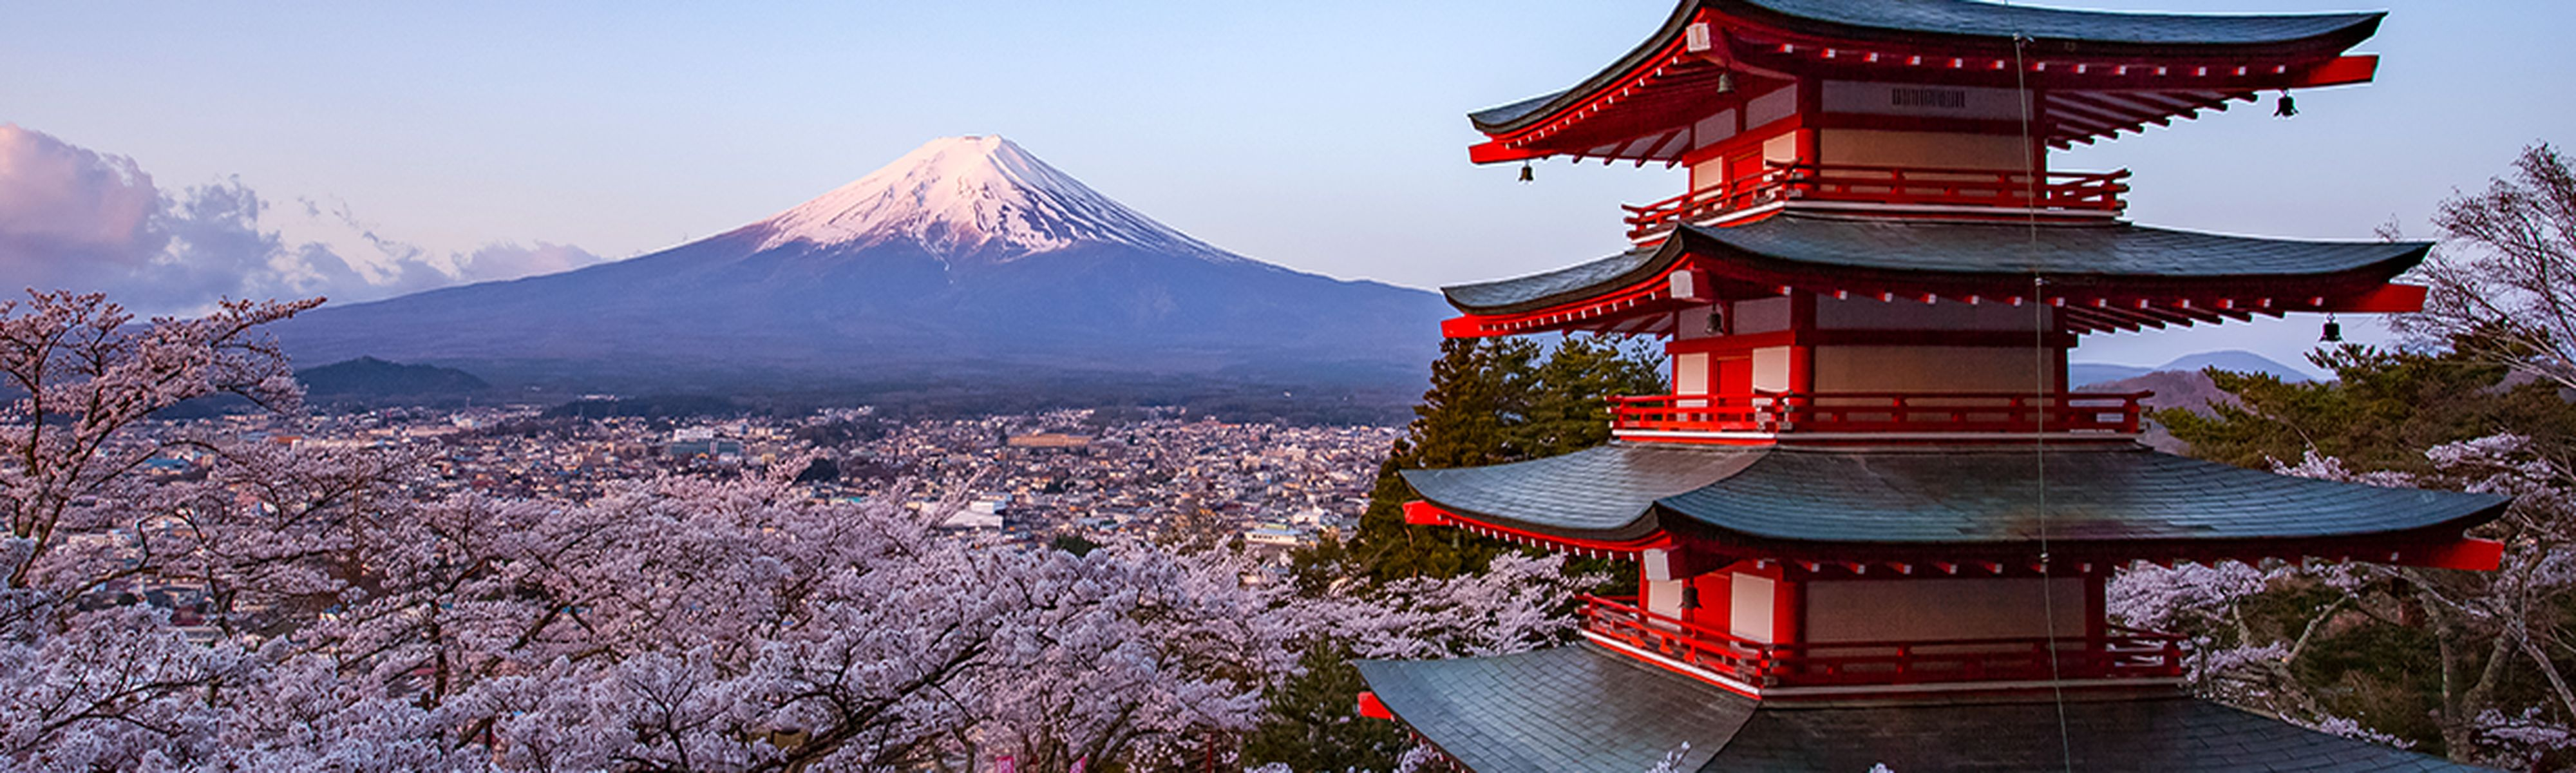 Shrine in Japan with view of Mount Fuji and Cherry Blossoms